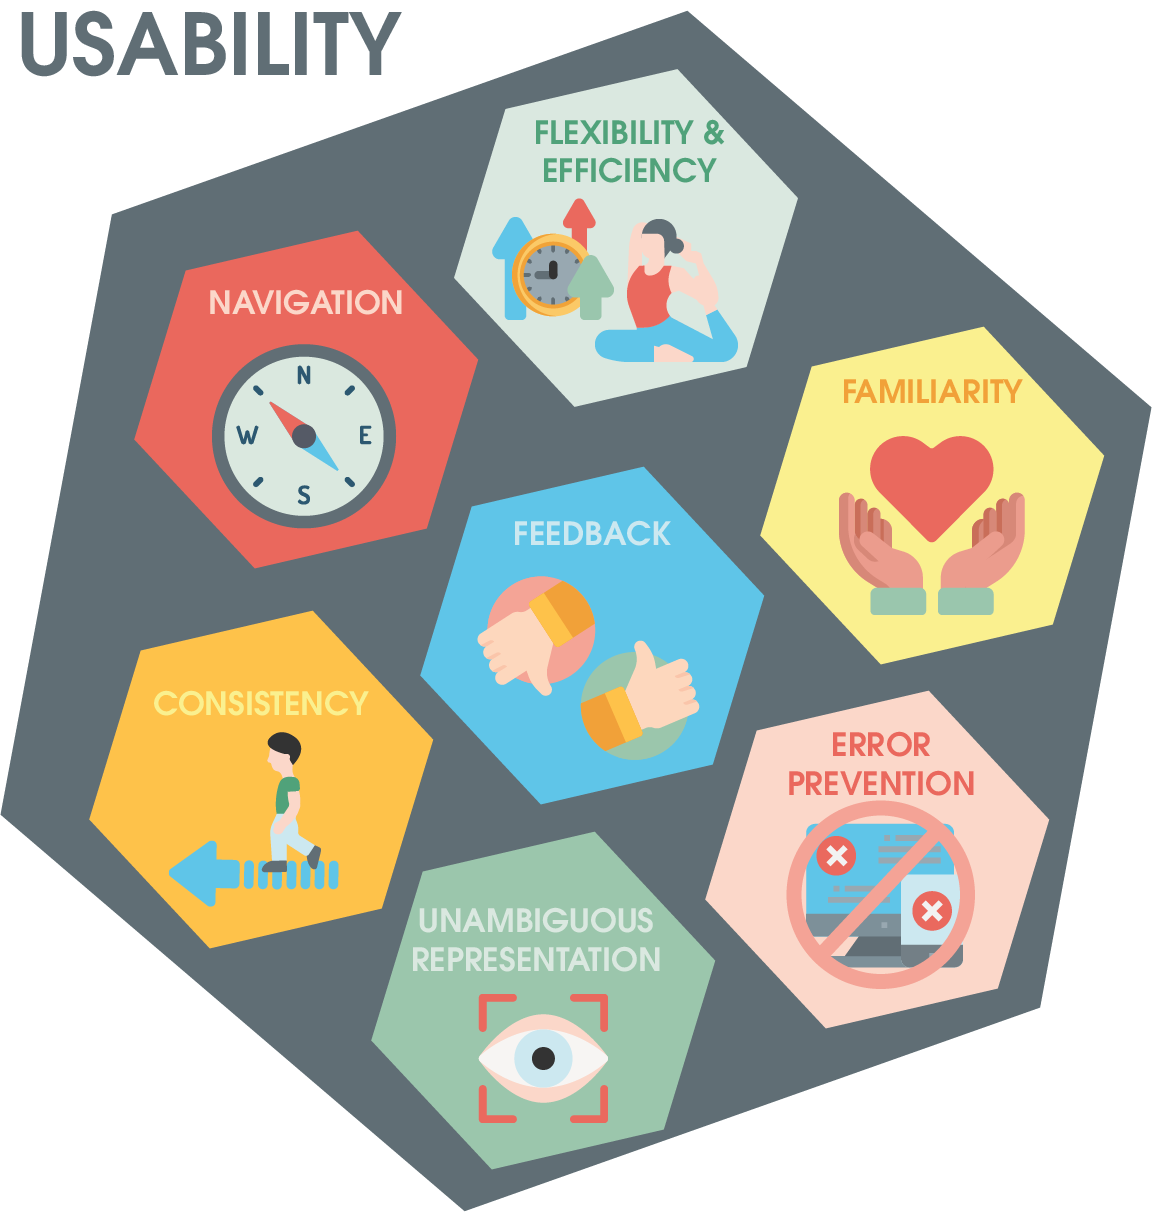 The components of usability